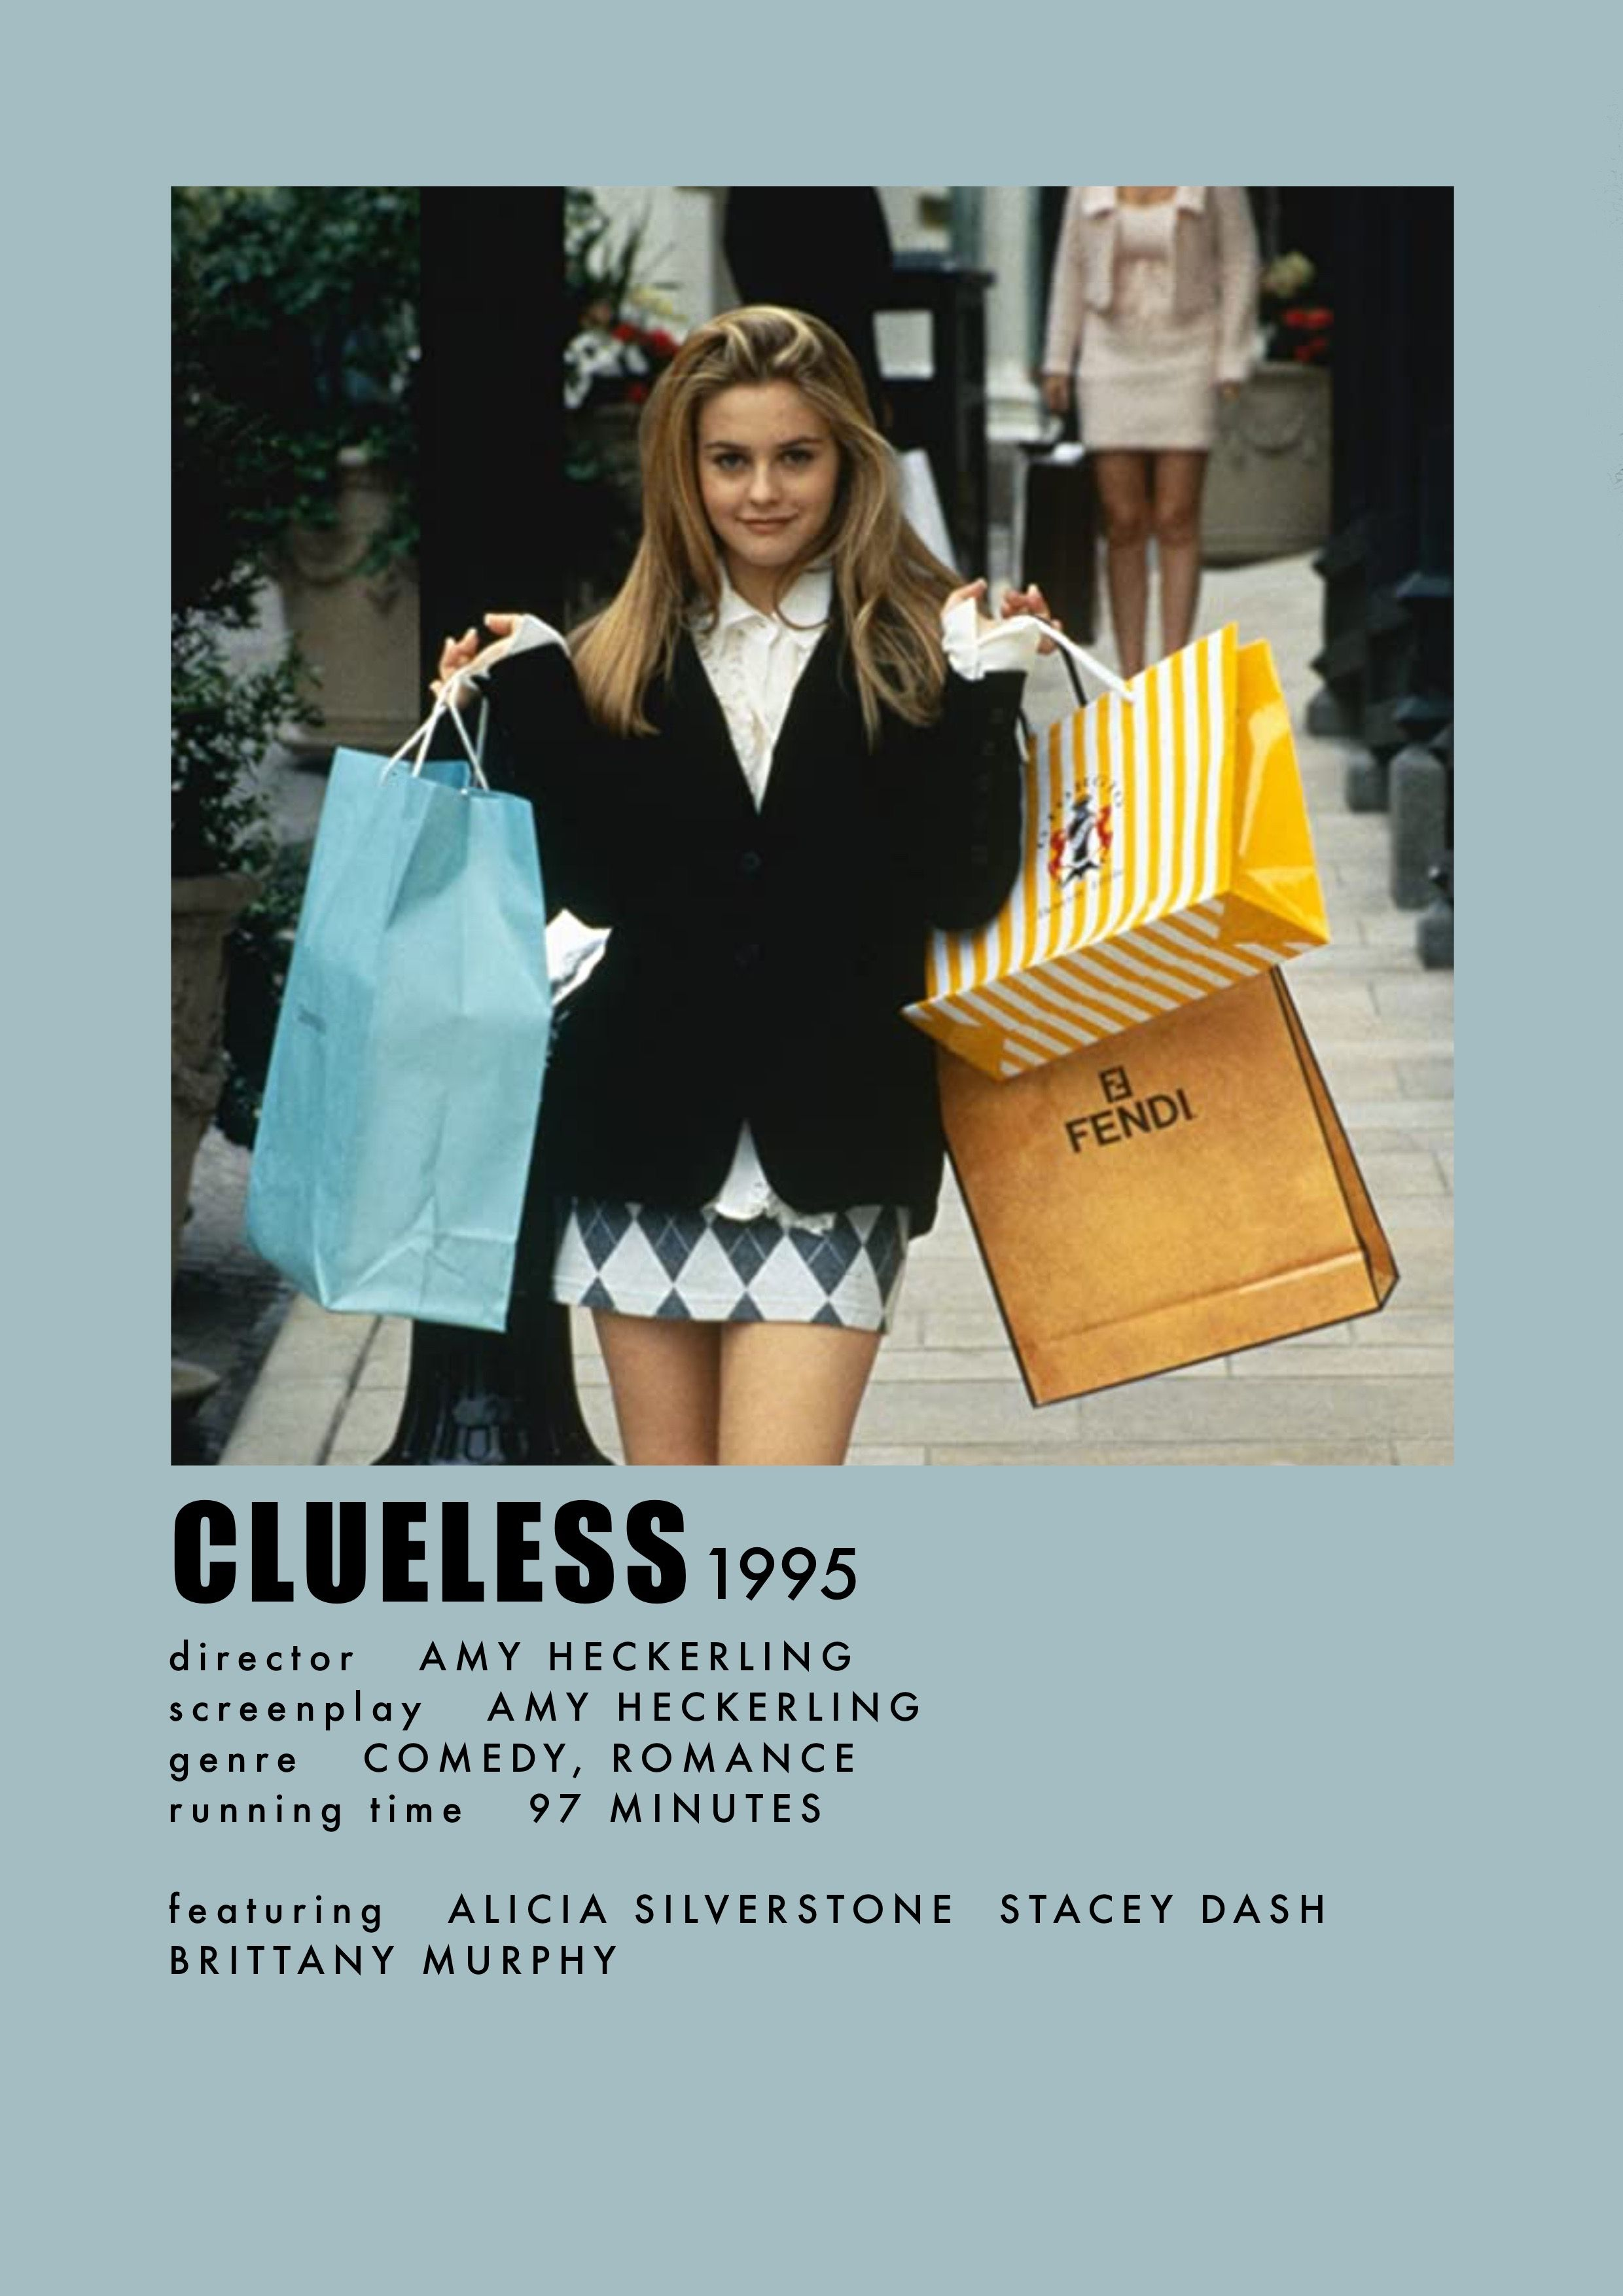 Clueless Movie Poster